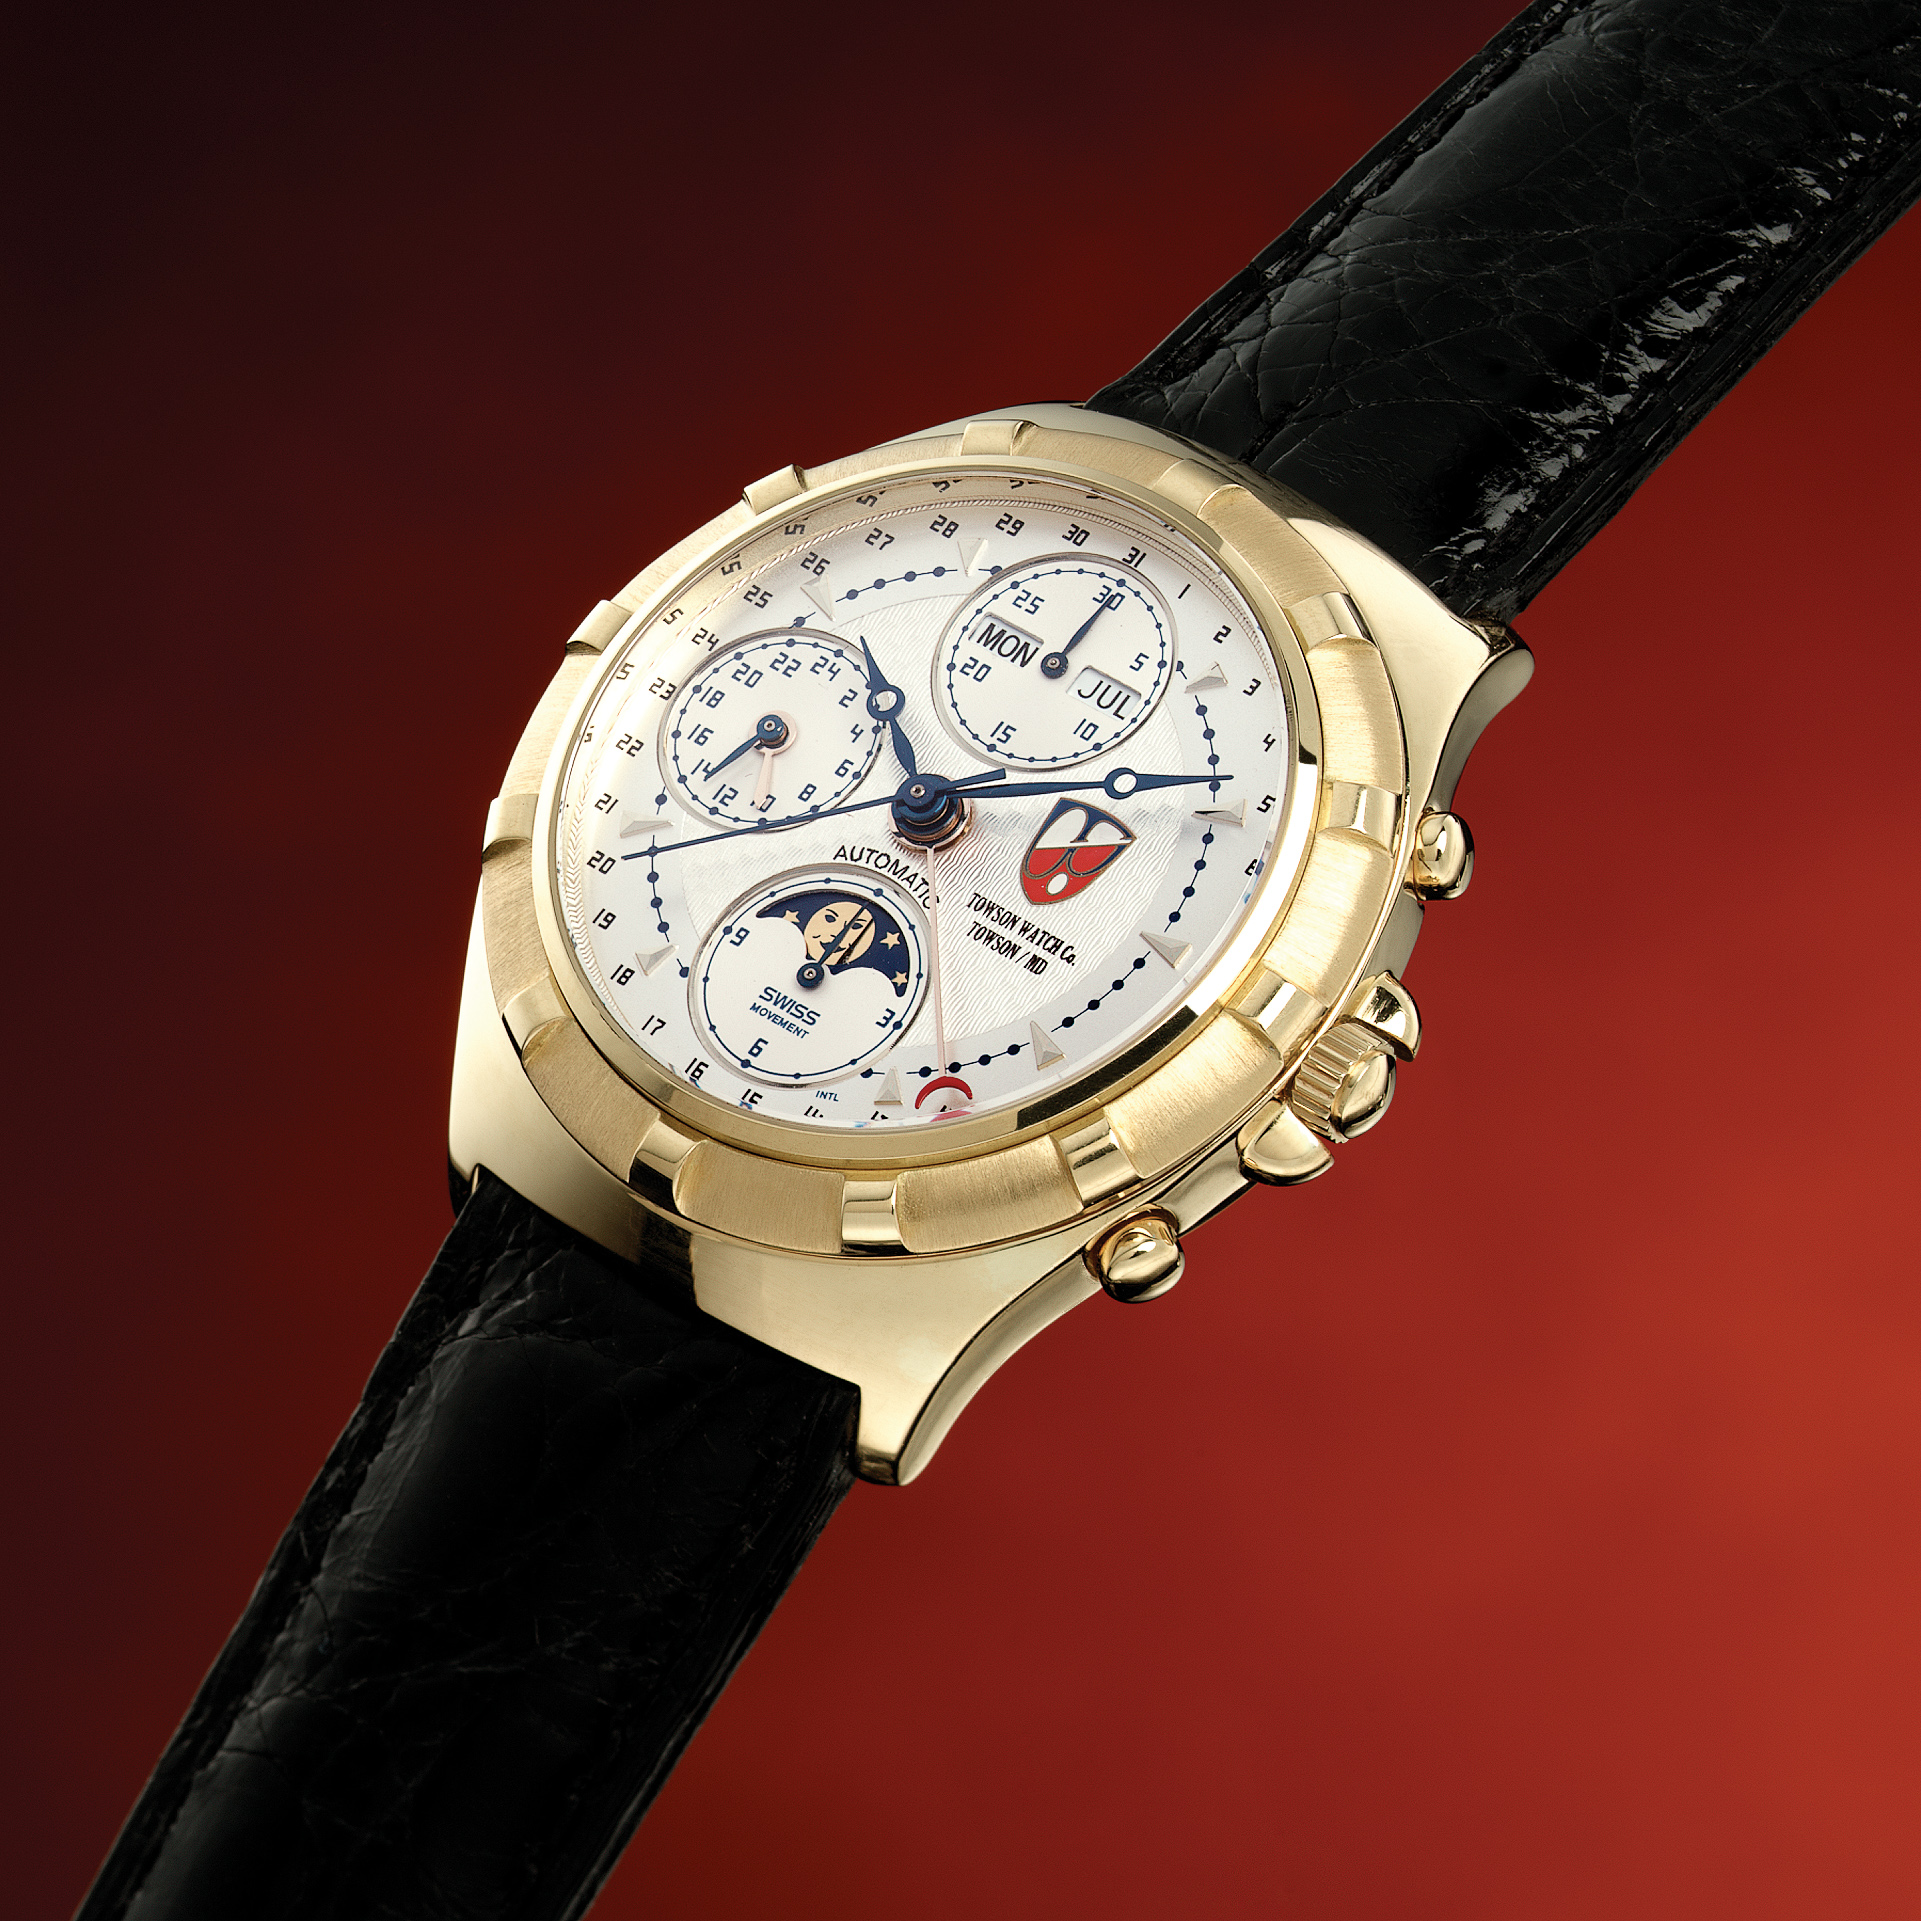 Decorative shot of a luxury Towson watch.